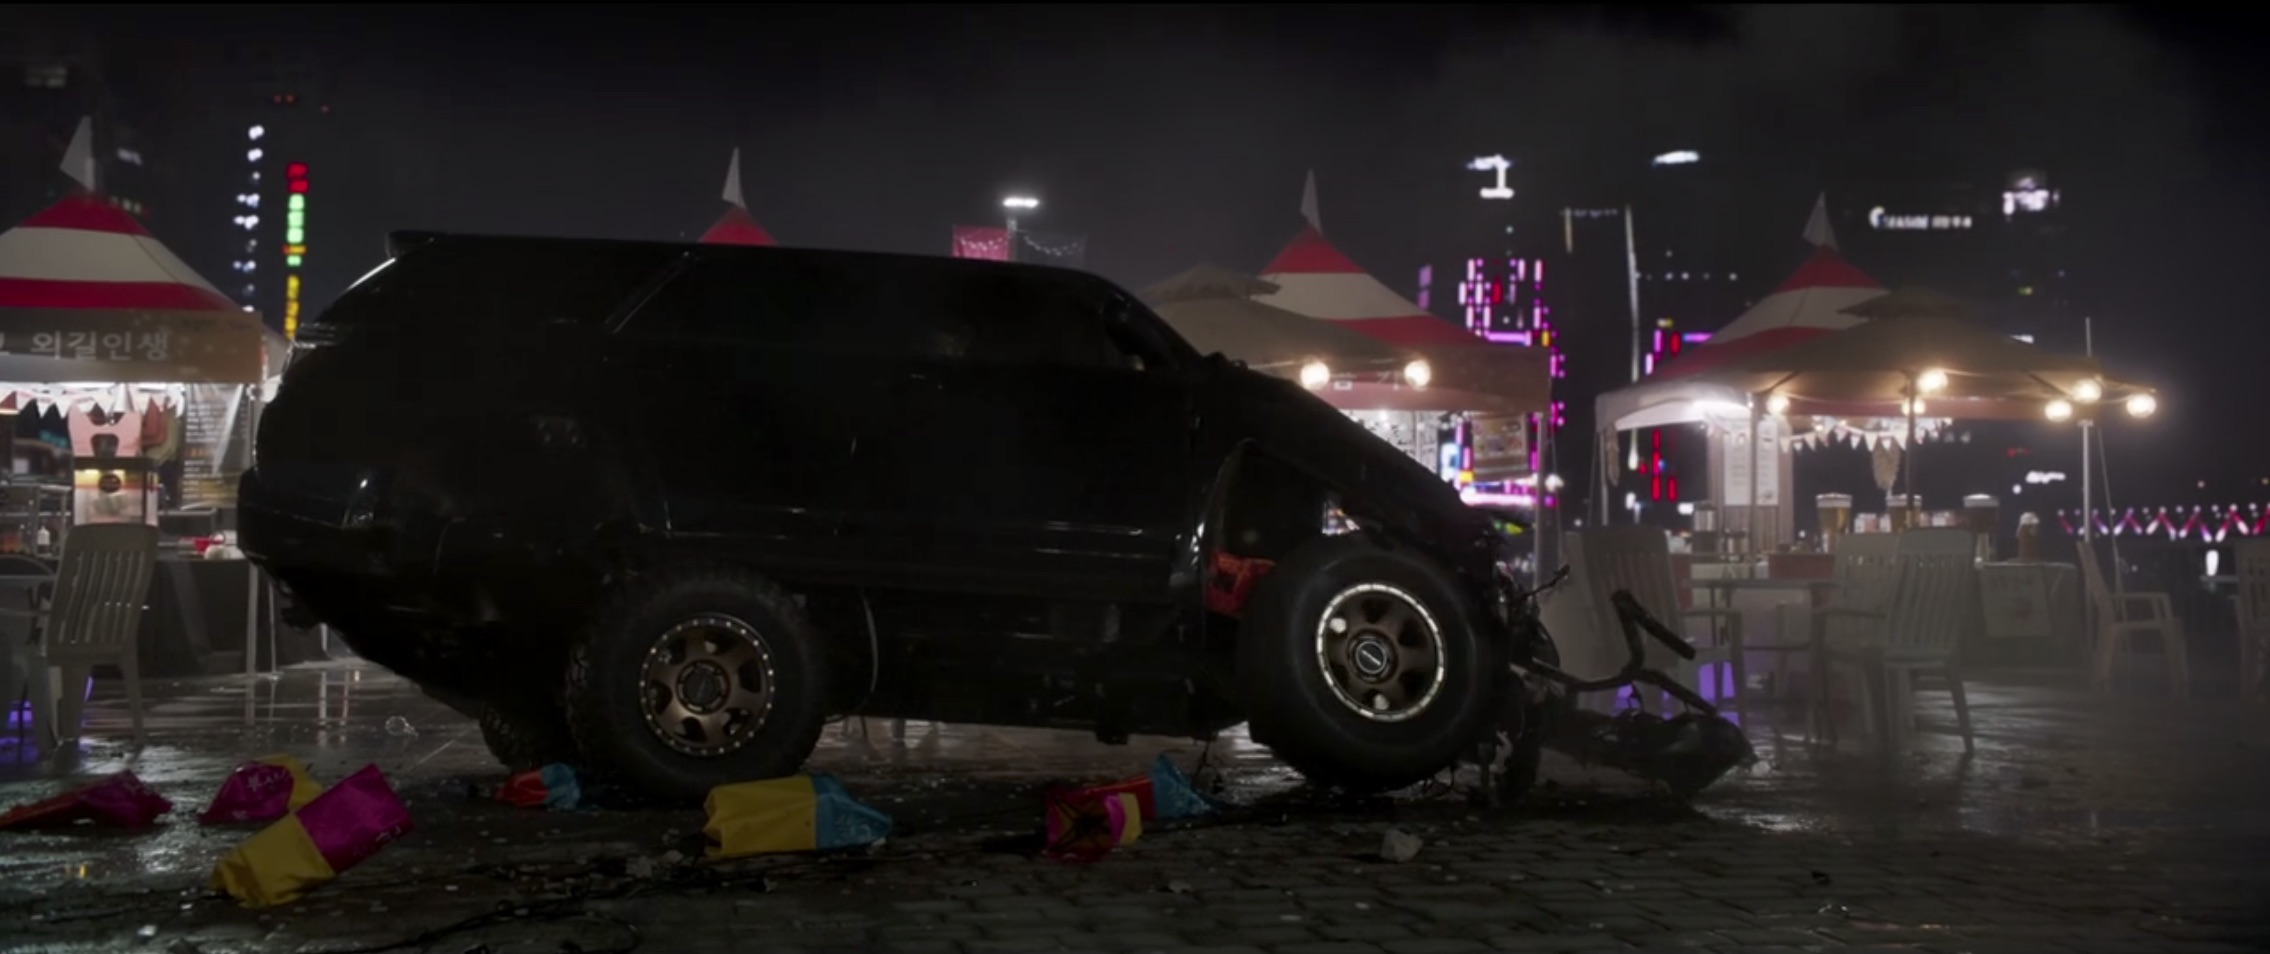 Marvel Black Panther wrecked suv